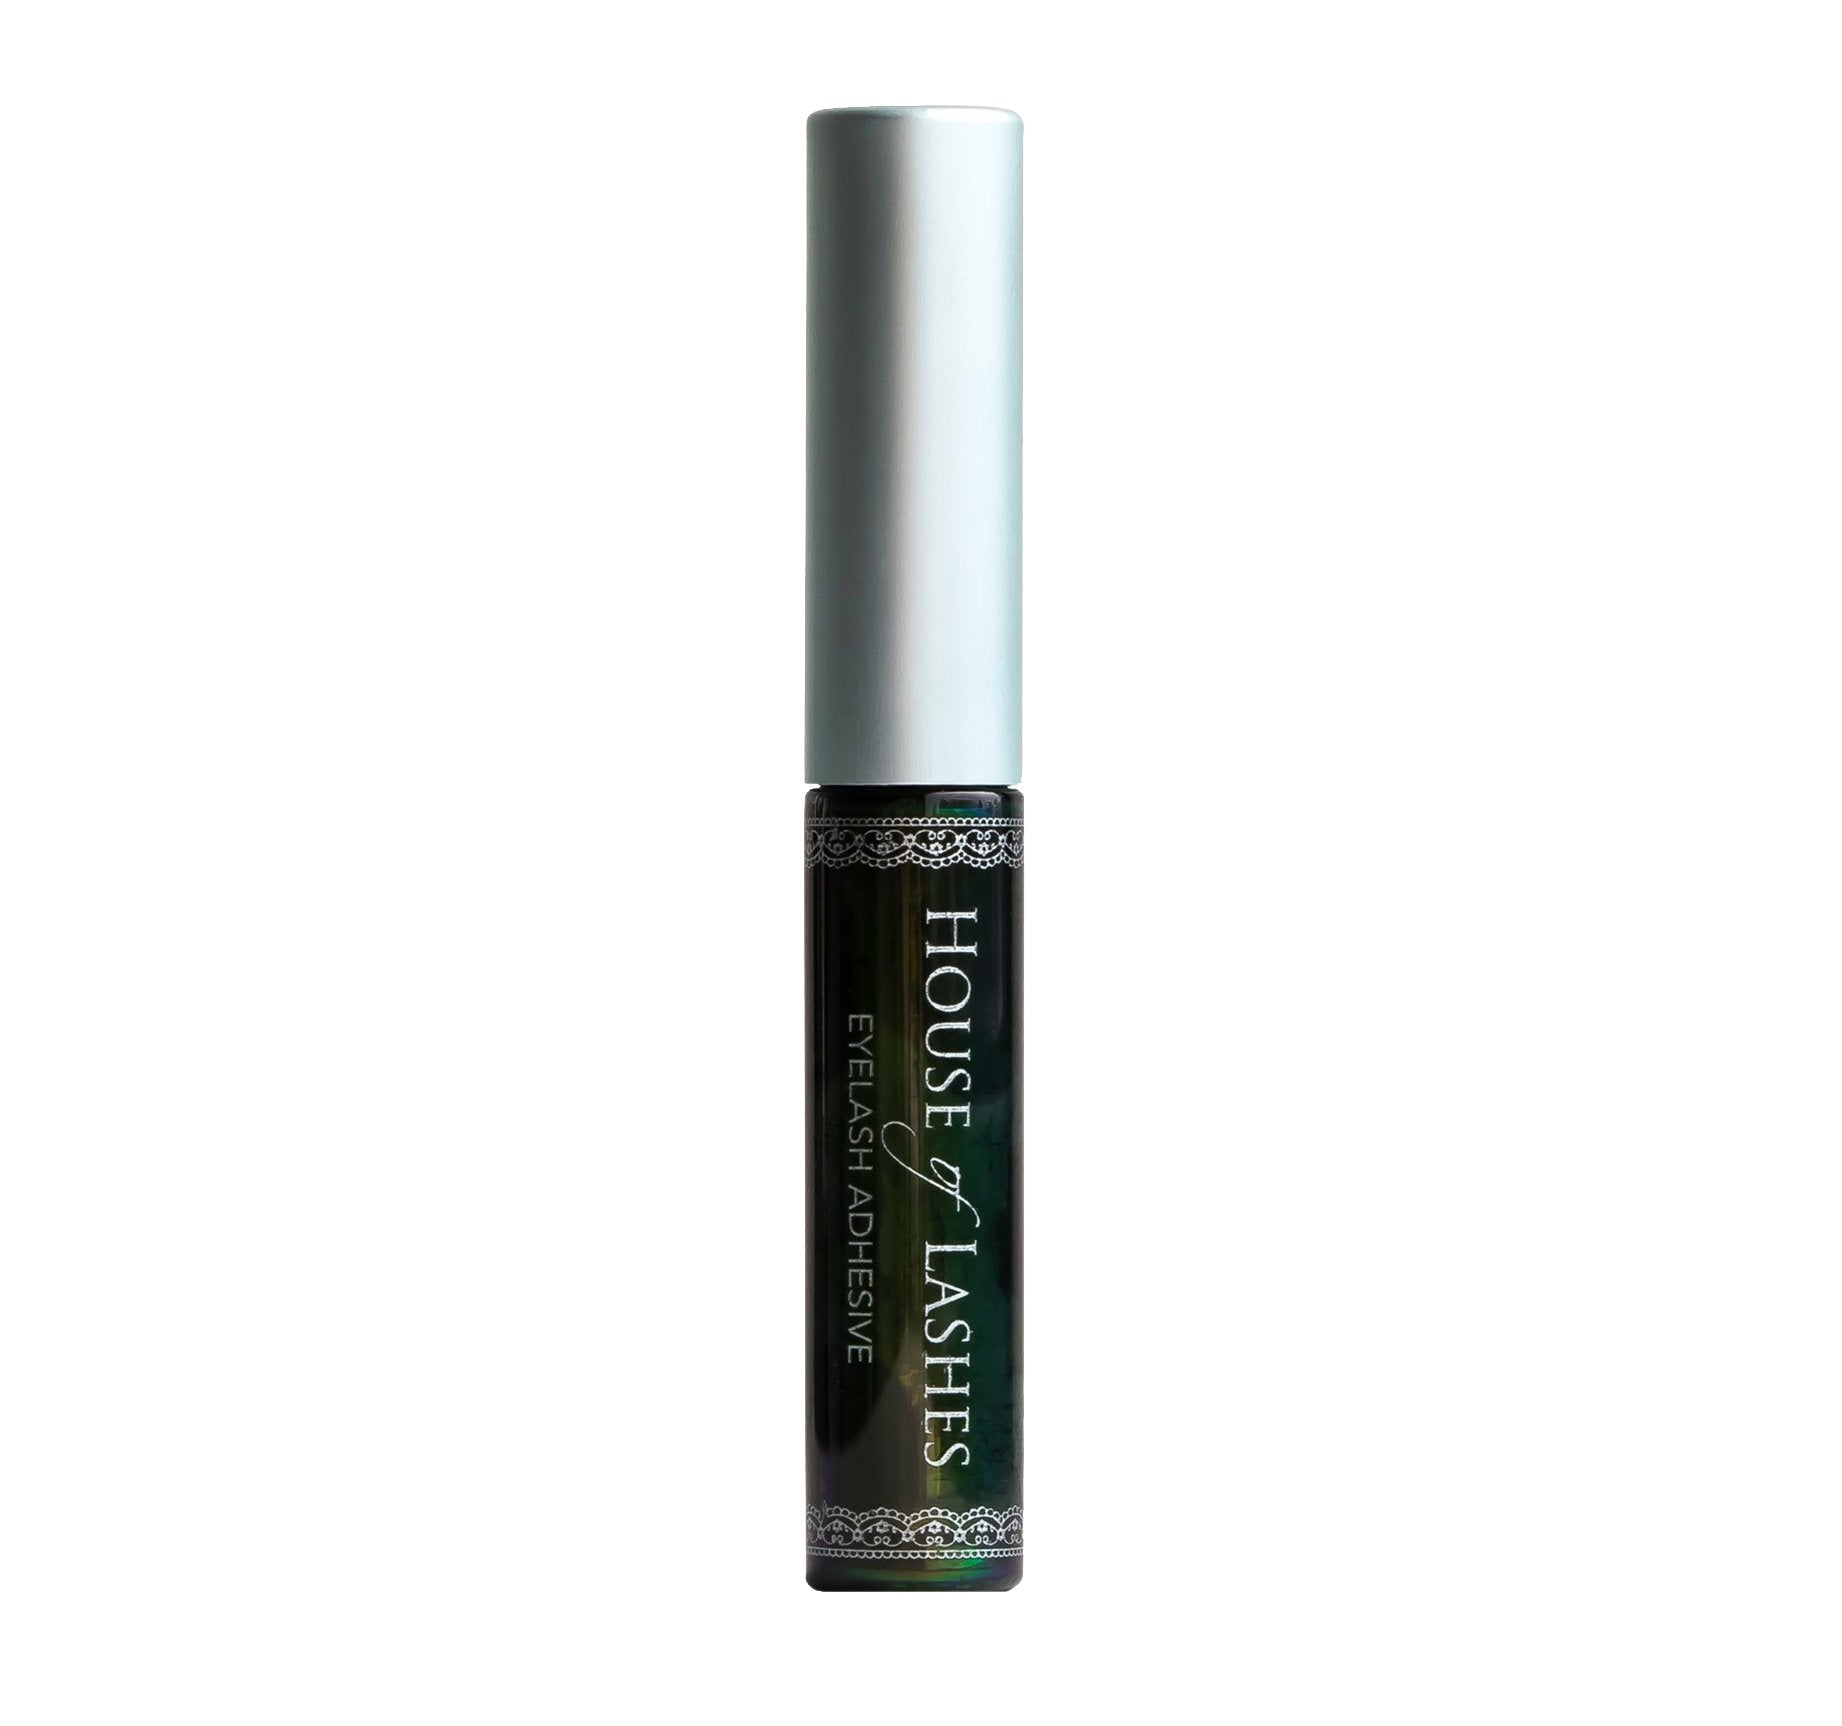 DARK LASH ADHESIVE, view larger image